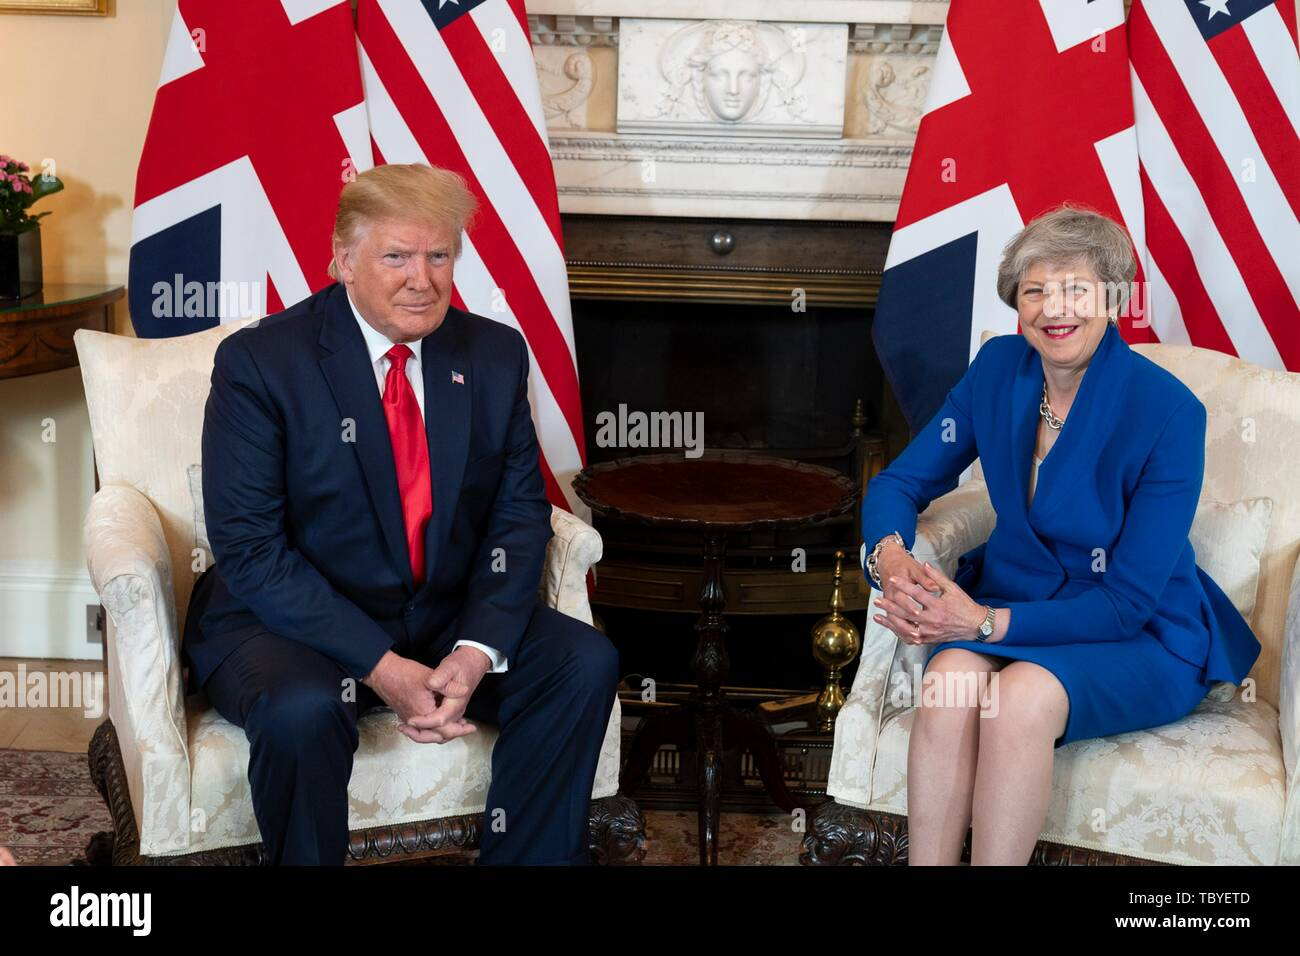 London, Großbritannien. 04 Juni, 2019. Us-Präsident Donald Trump erfüllt mit dem scheidenden britischen Premierminister Theresa May an Nr. 10 Downing Street Juni 4, 2019 in London, England. Credit: Planetpix/Alamy leben Nachrichten Stockfoto